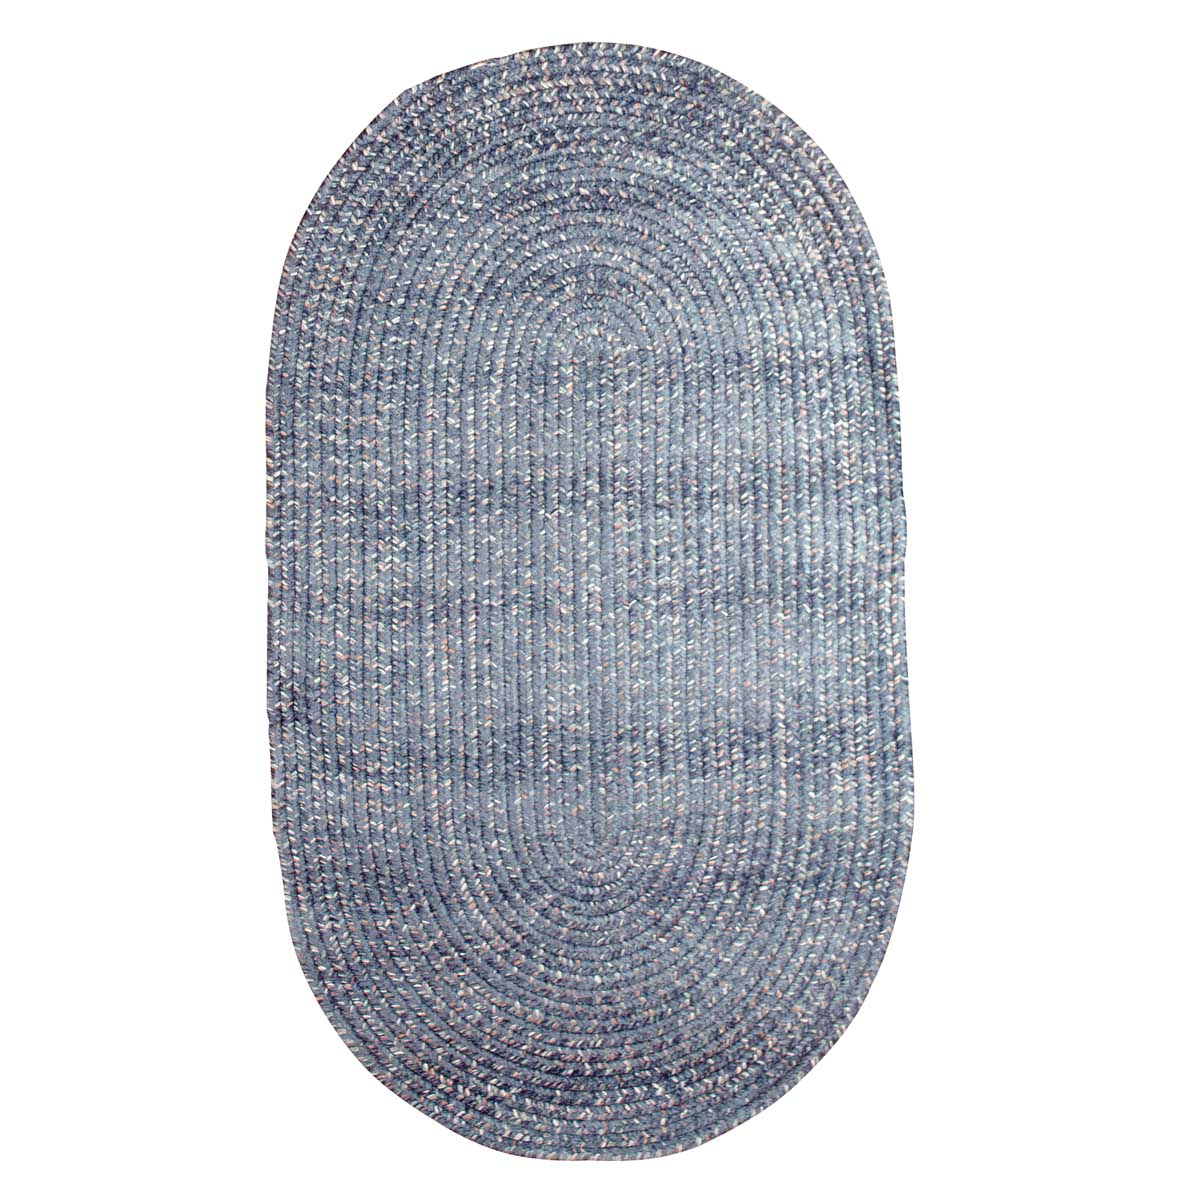 Oval Area Rug 5' X 3' Blue Polypropylene